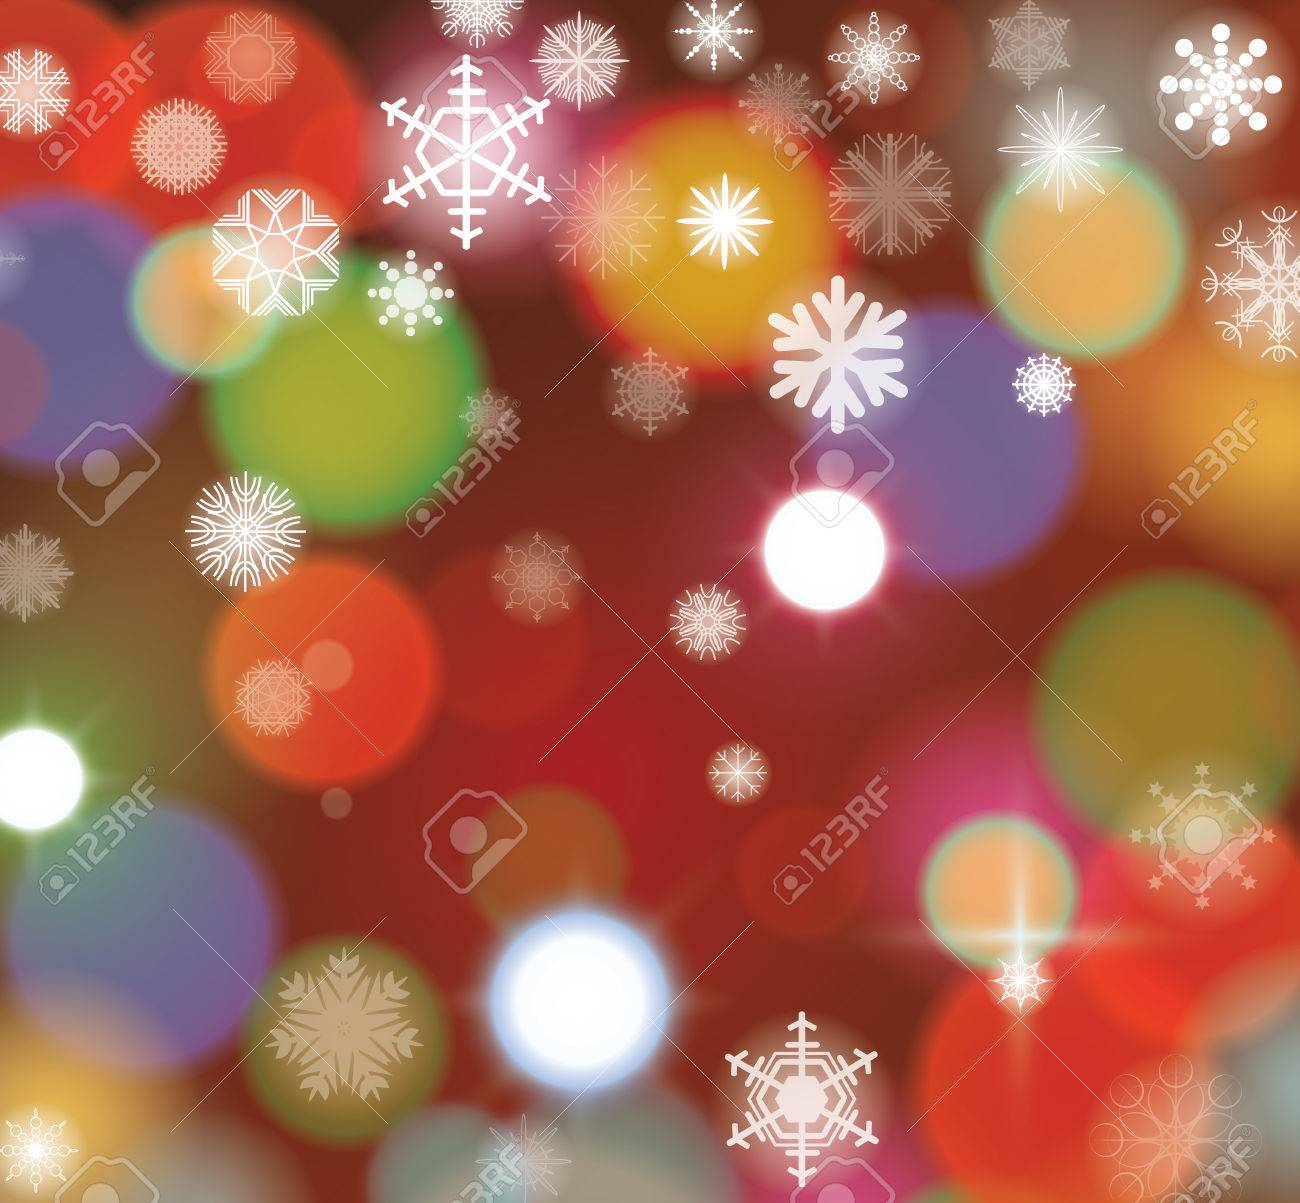 Lights Christmas background, vector. - 47554212